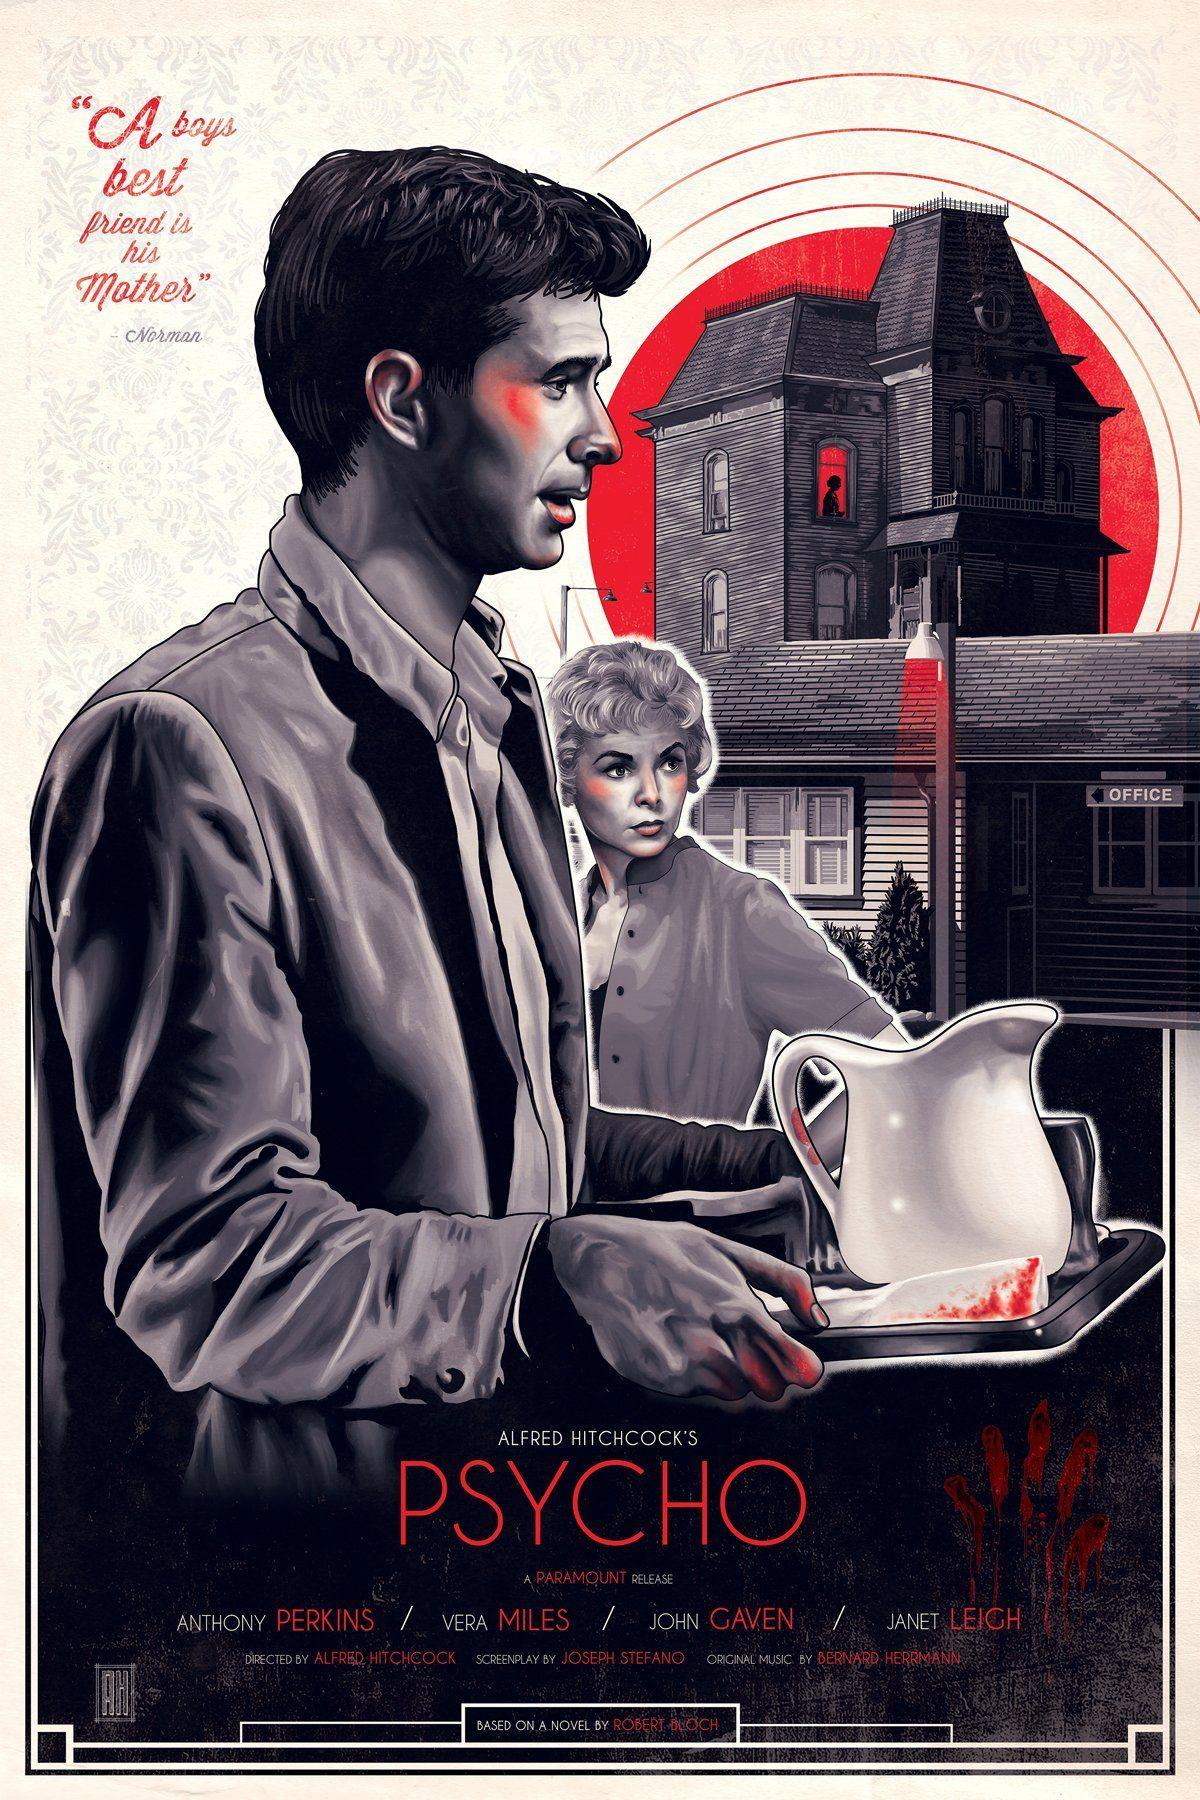 Psycho (1960) HD Wallpaper From Gallsource.com | Movie posters ...